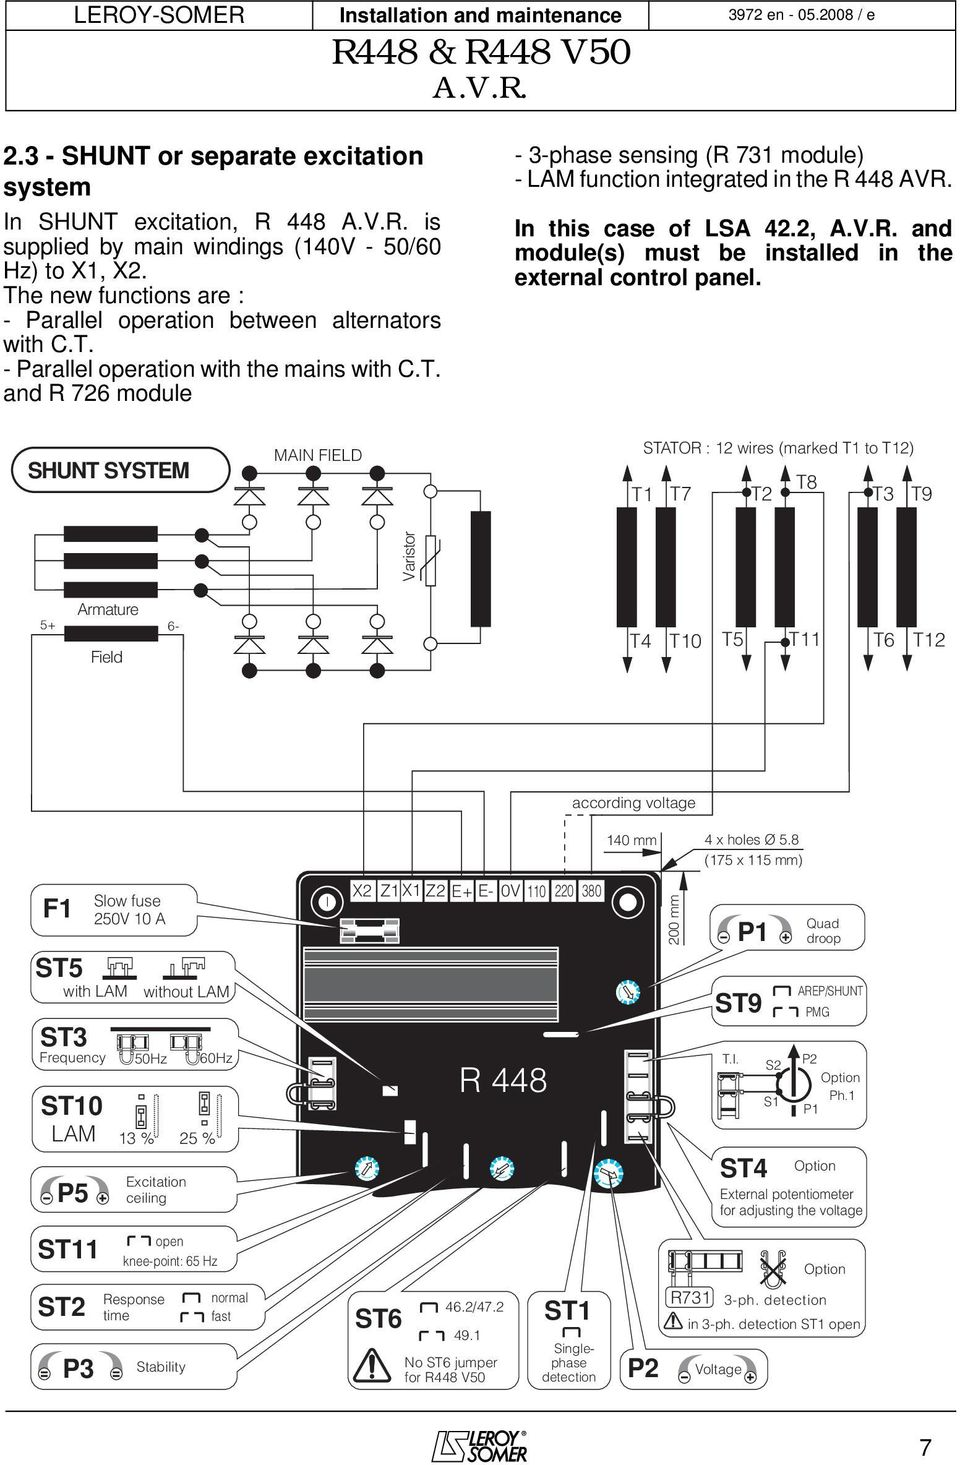 R448 V50 Avr Pdf 3300 International Fuse Box Diagram 2 And Modules Must Be Installed In The External Control Panel